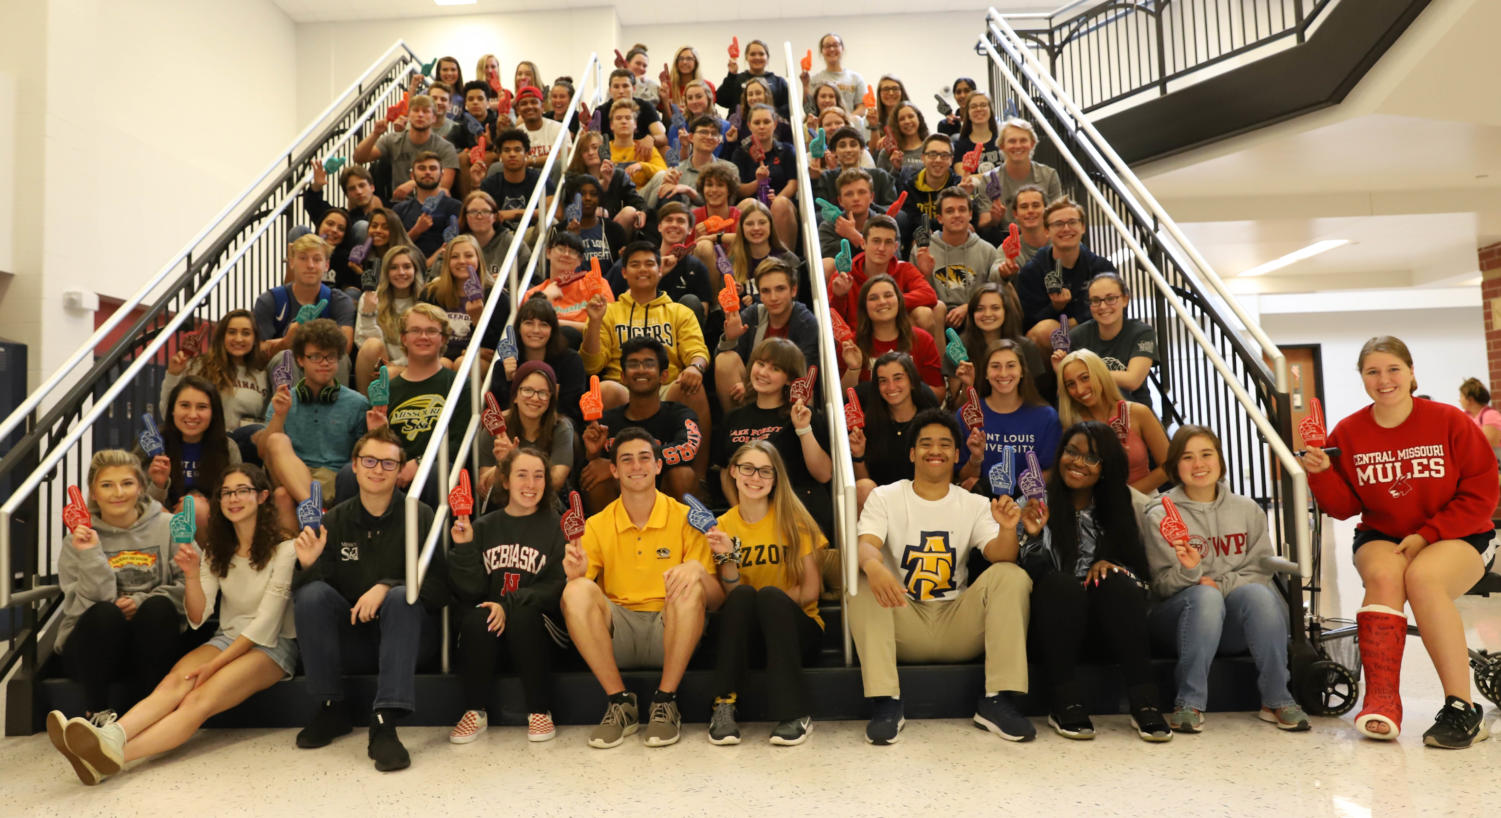 Many seniors proudly wear their college shirt for  National Decision Day.